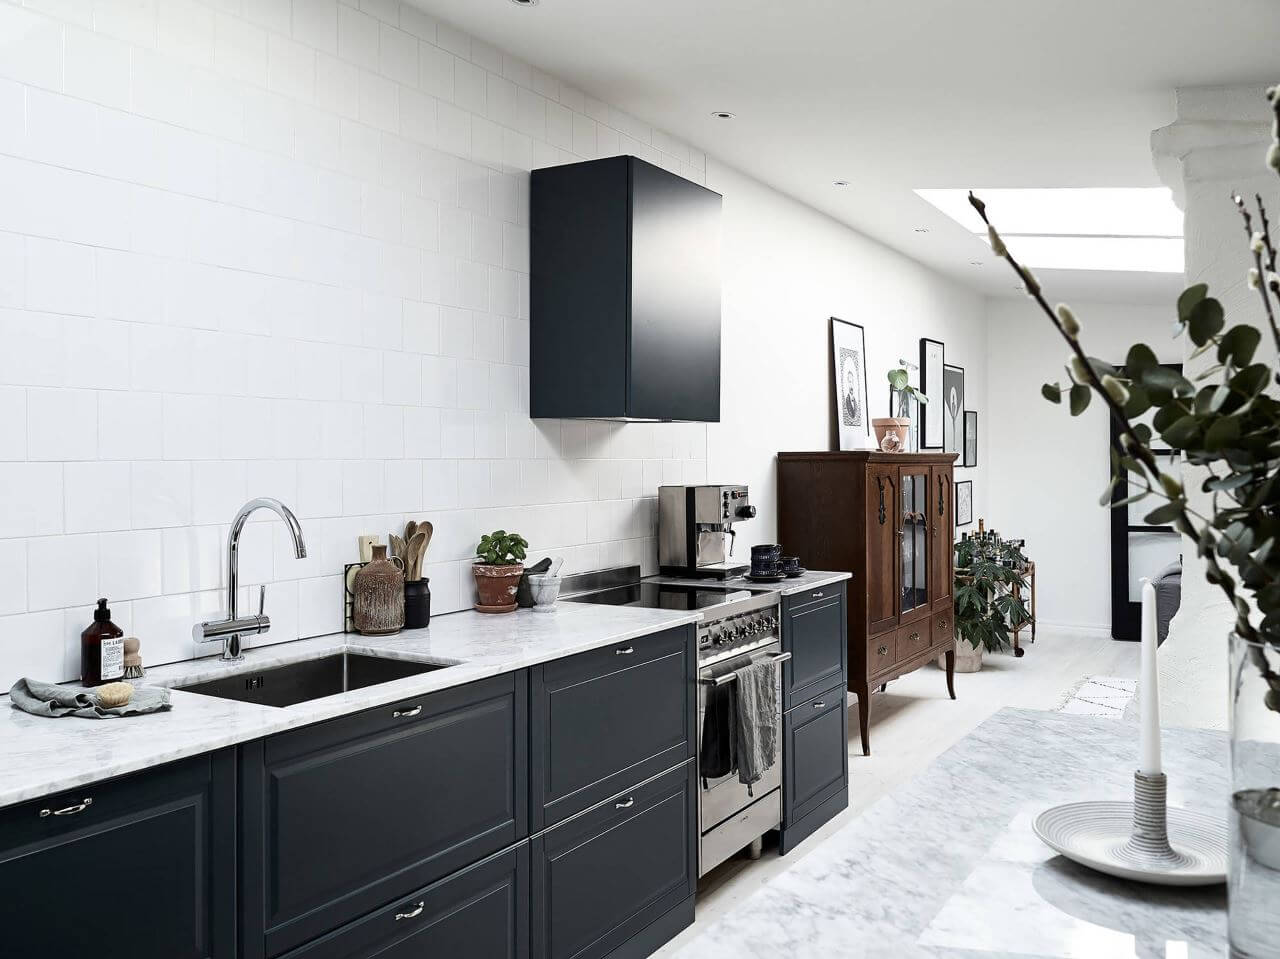 15 Design Ideas For Kitchens Without Upper Cabinets: Kitchen Without Upper Cabinet. Design Ideas No Upper